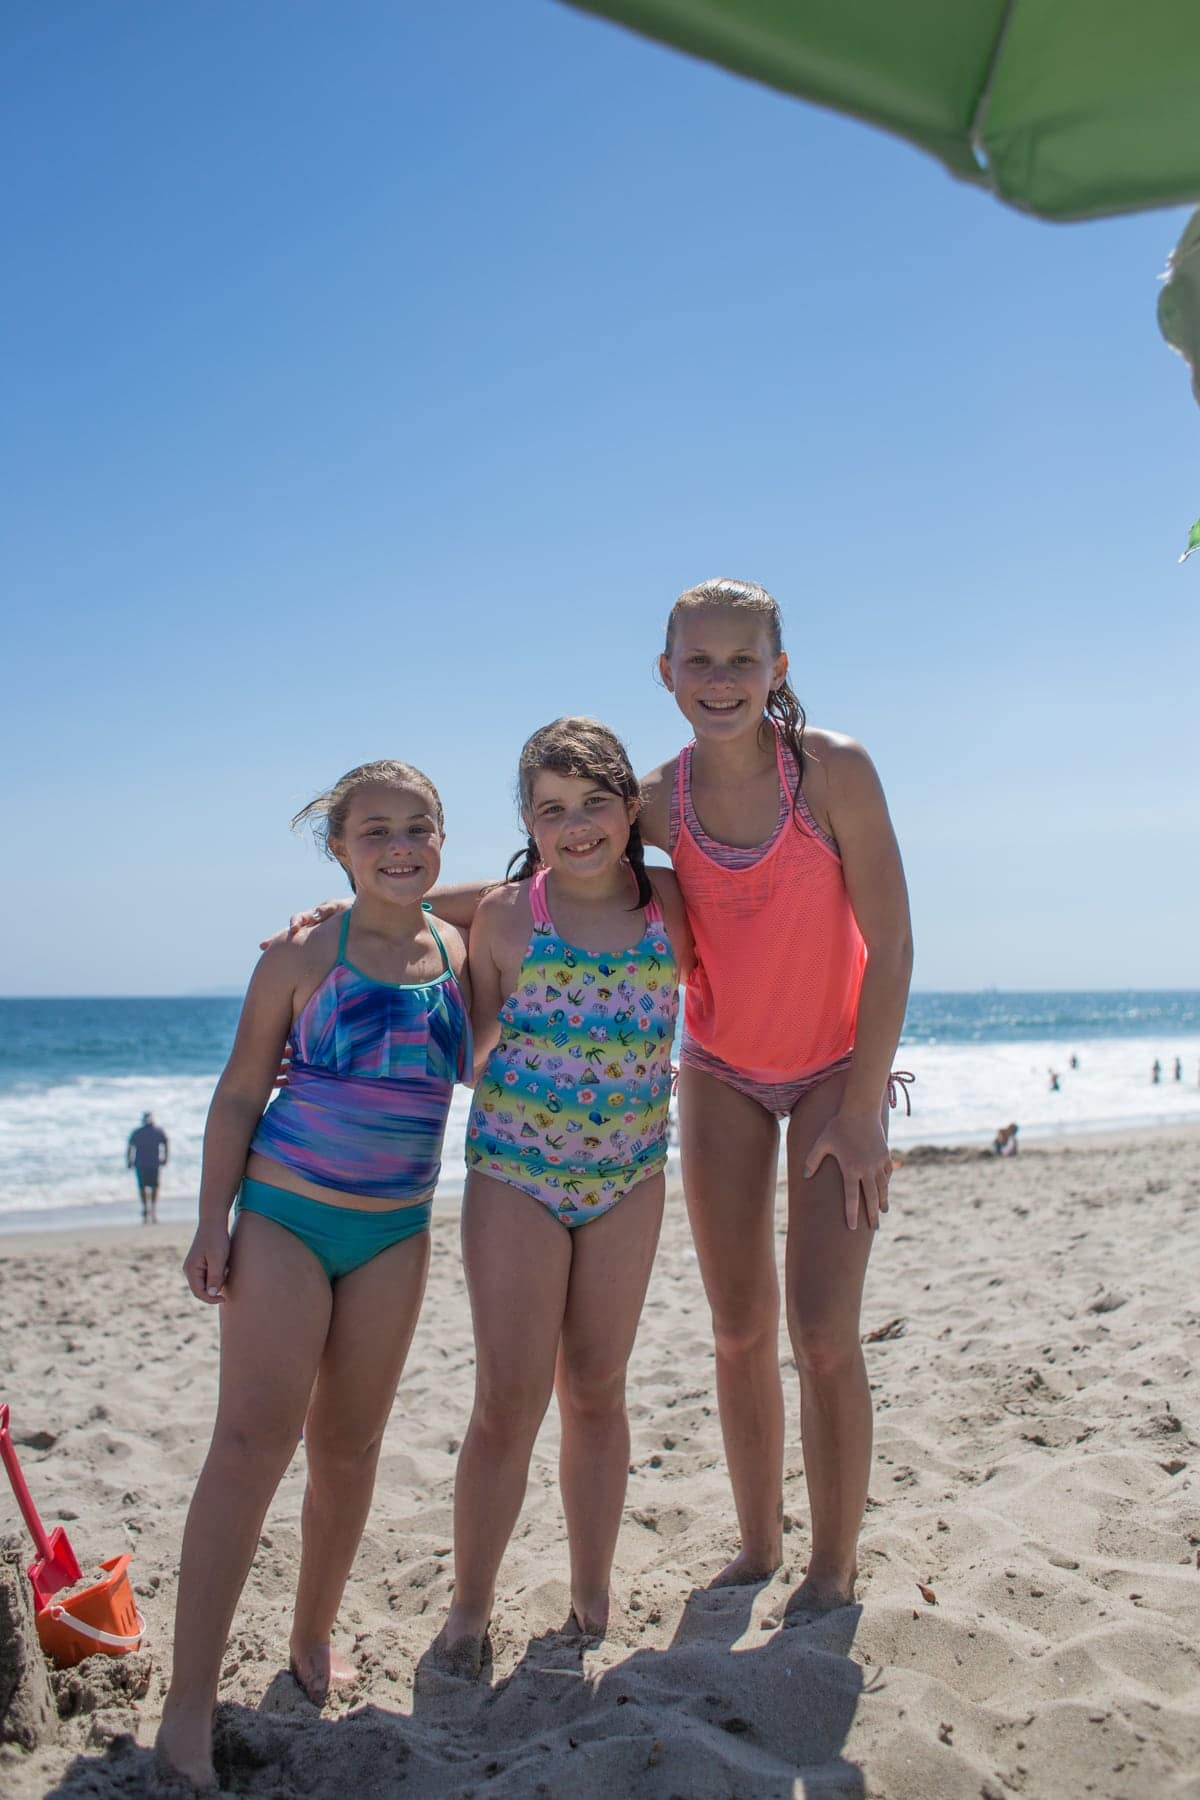 Brooke and friends at the beach